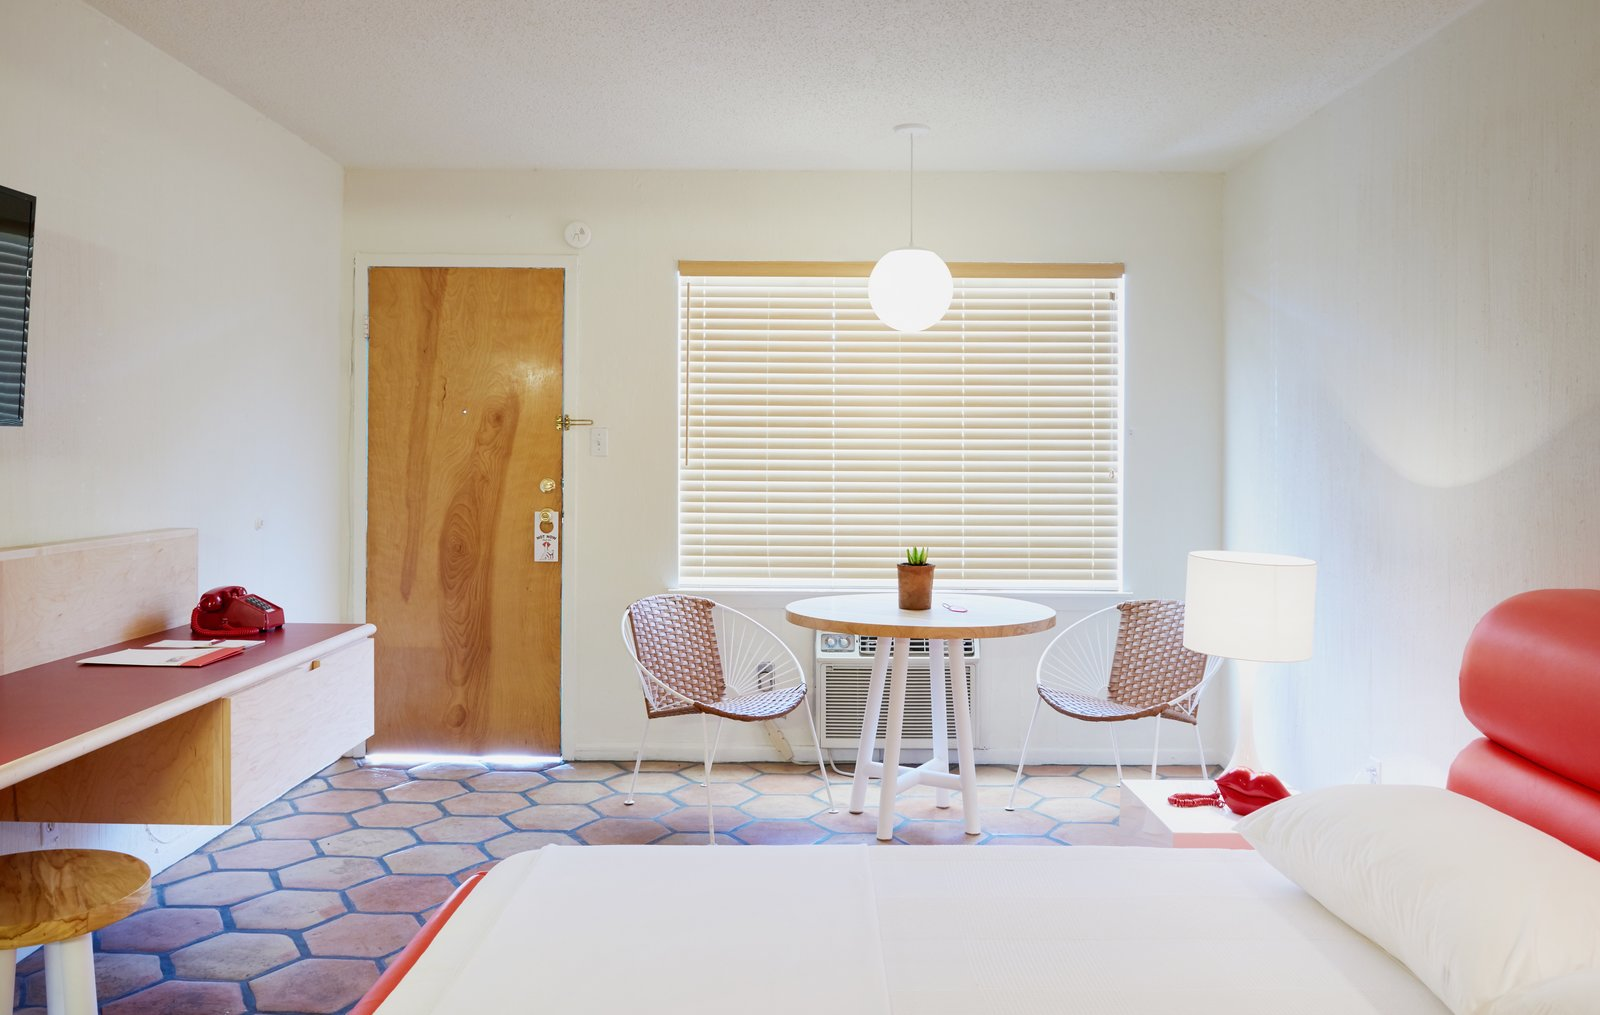 Photo 6 of 13 in The Rejuvenated Austin Motel Welcomes Guests With Upbeat, Midcentury-Modern Vibes